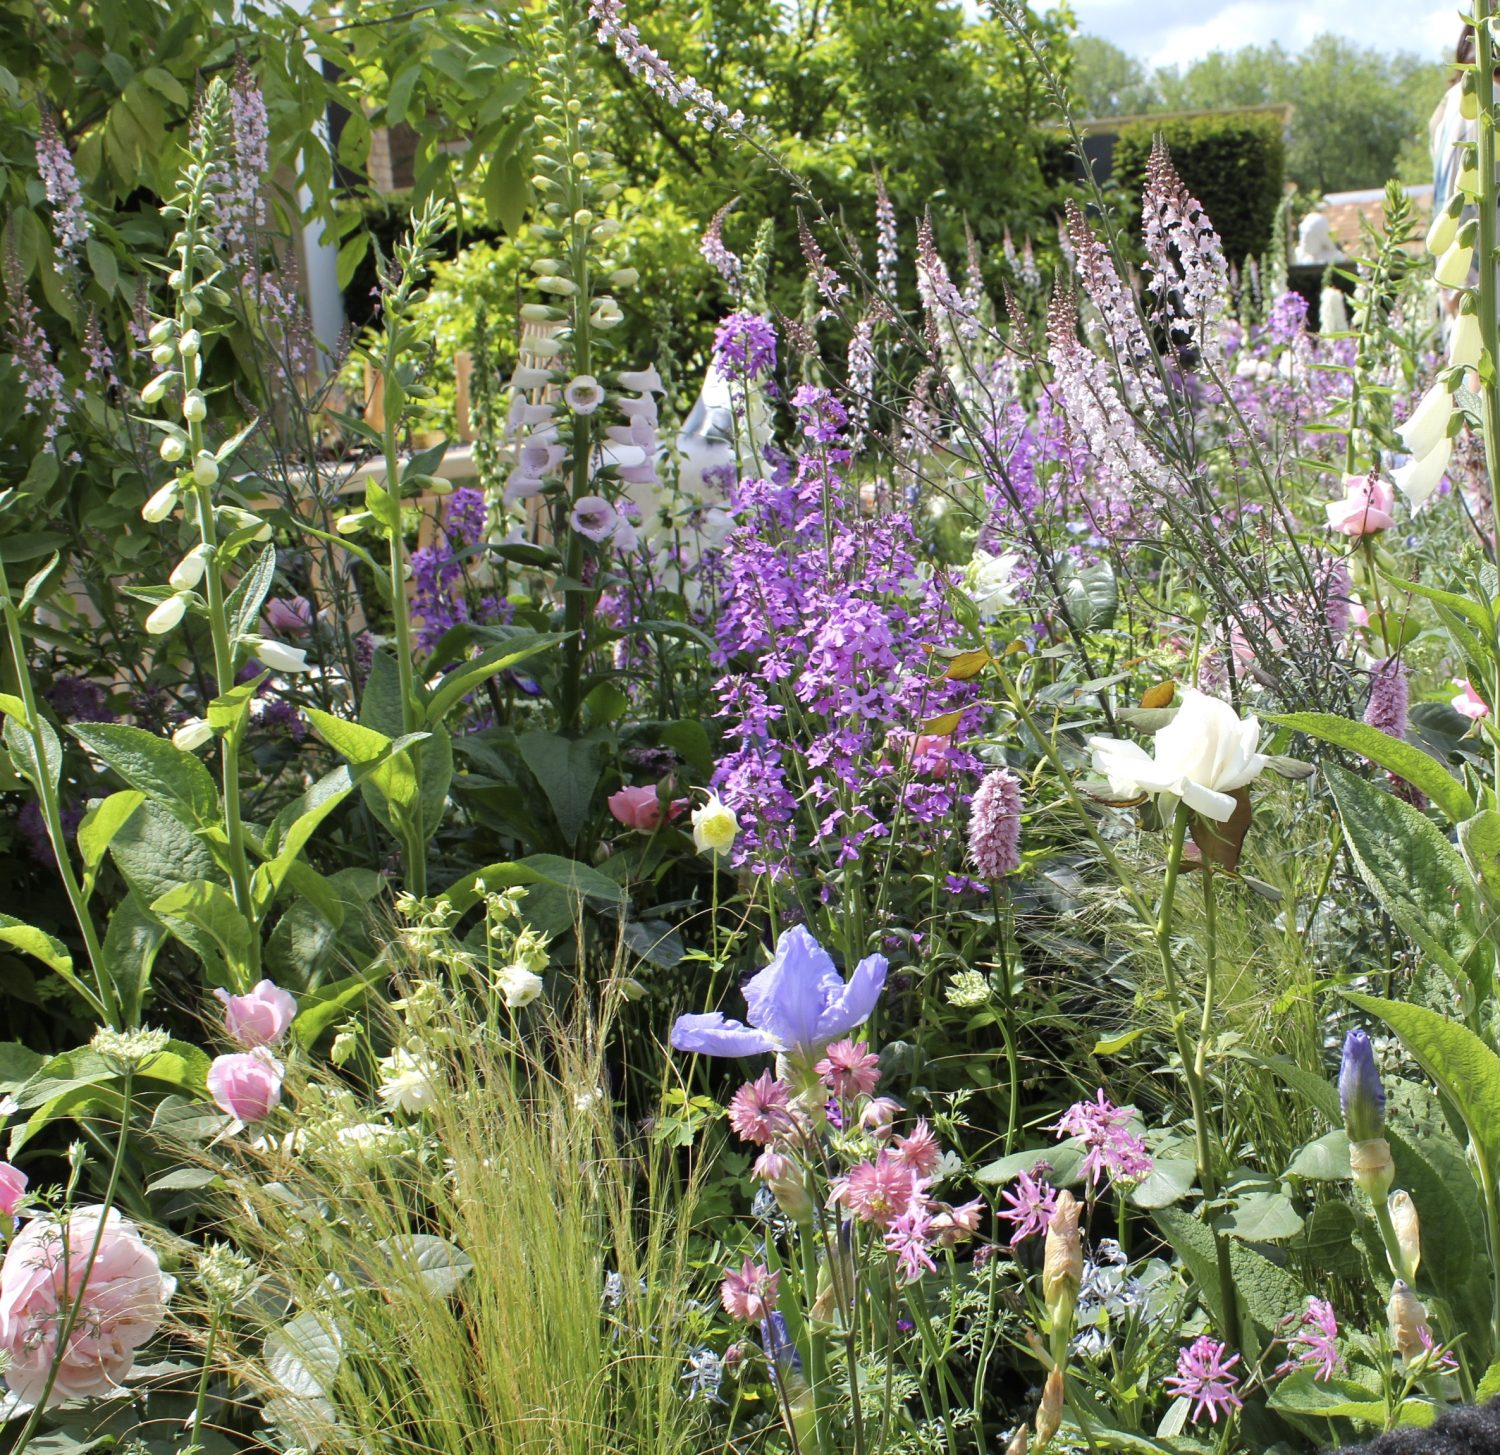 A joyful jumble of cottage garden plants